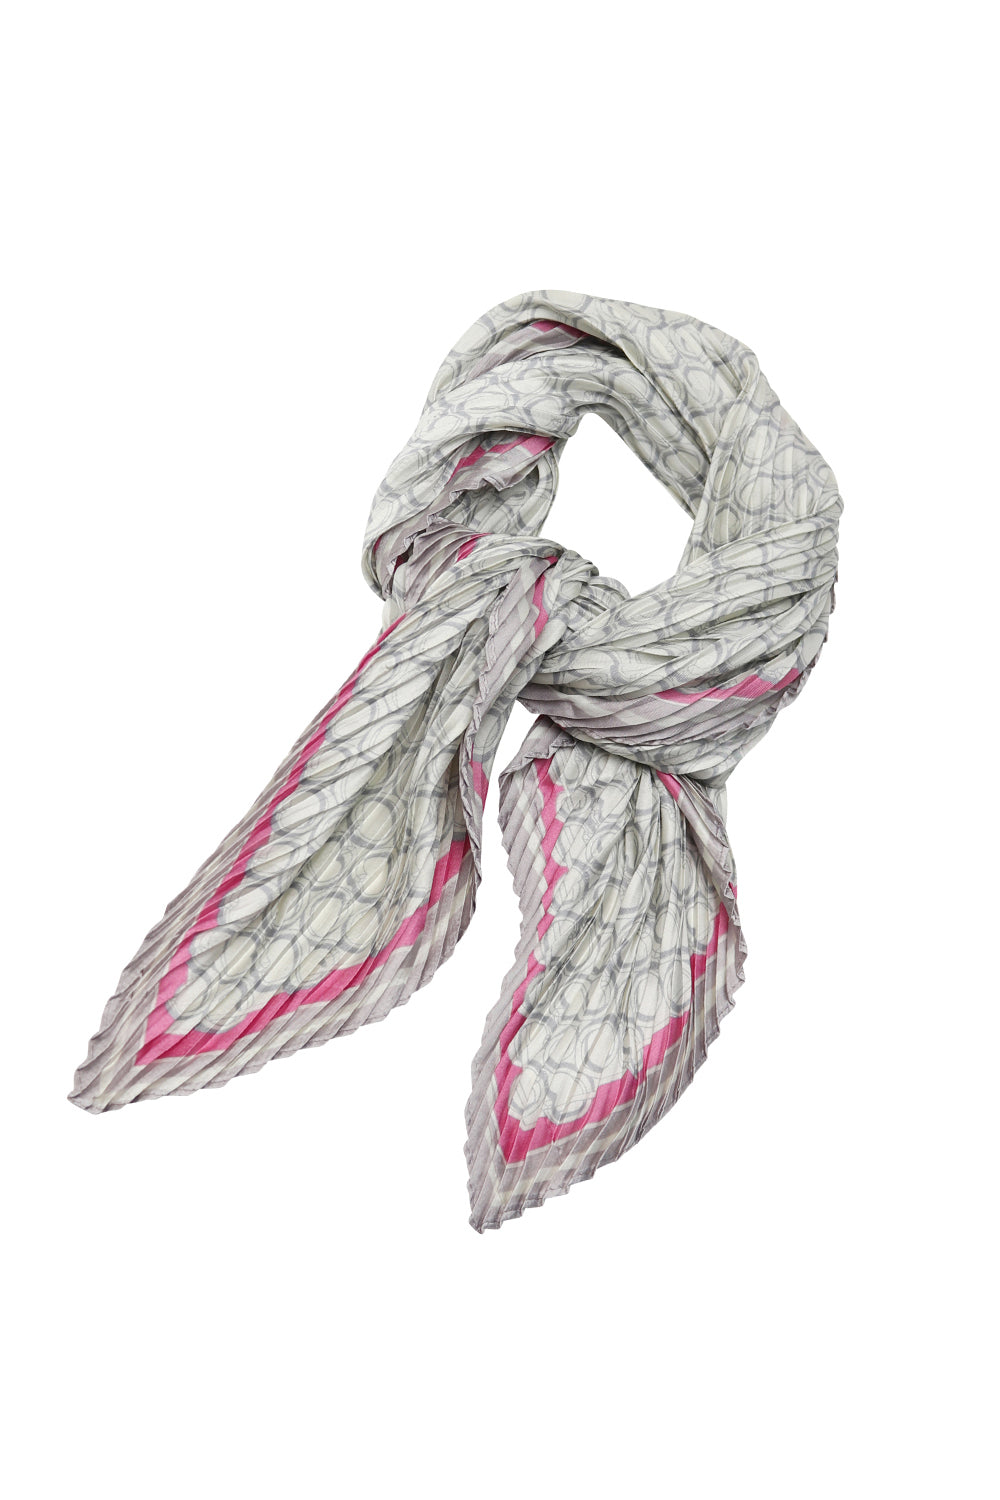 Scarf - Pink Edge Silver Circles